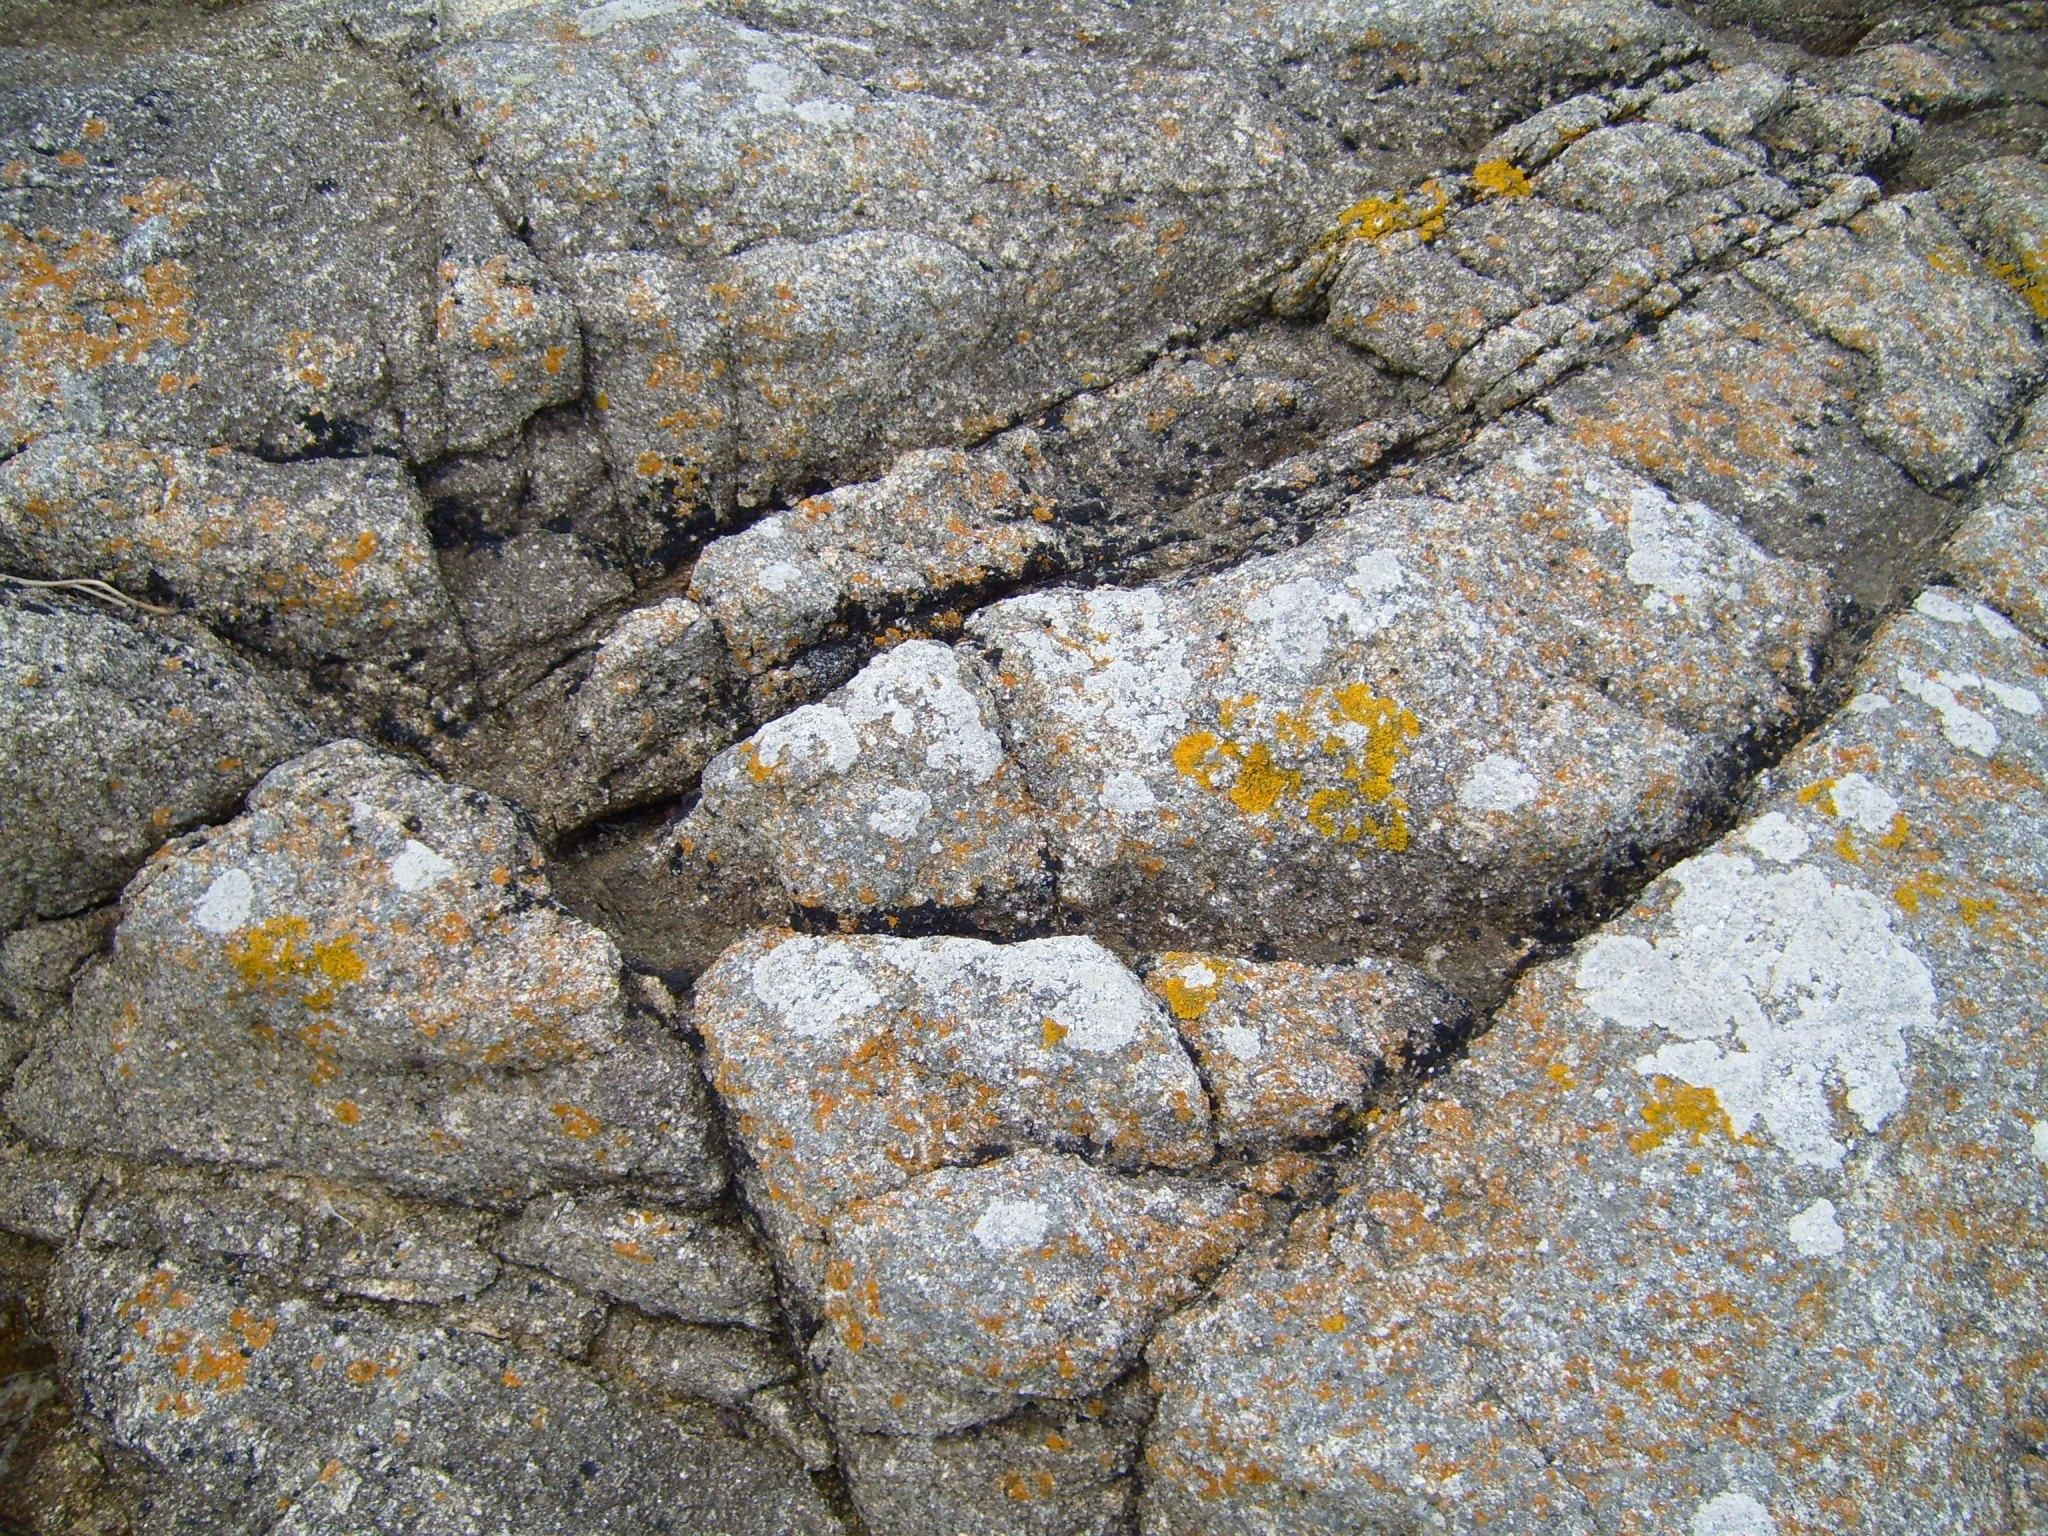 File:Cracked stones pattern.jpg - Wikimedia Commons: https://commons.wikimedia.org/wiki/file:cracked_stones_pattern.jpg